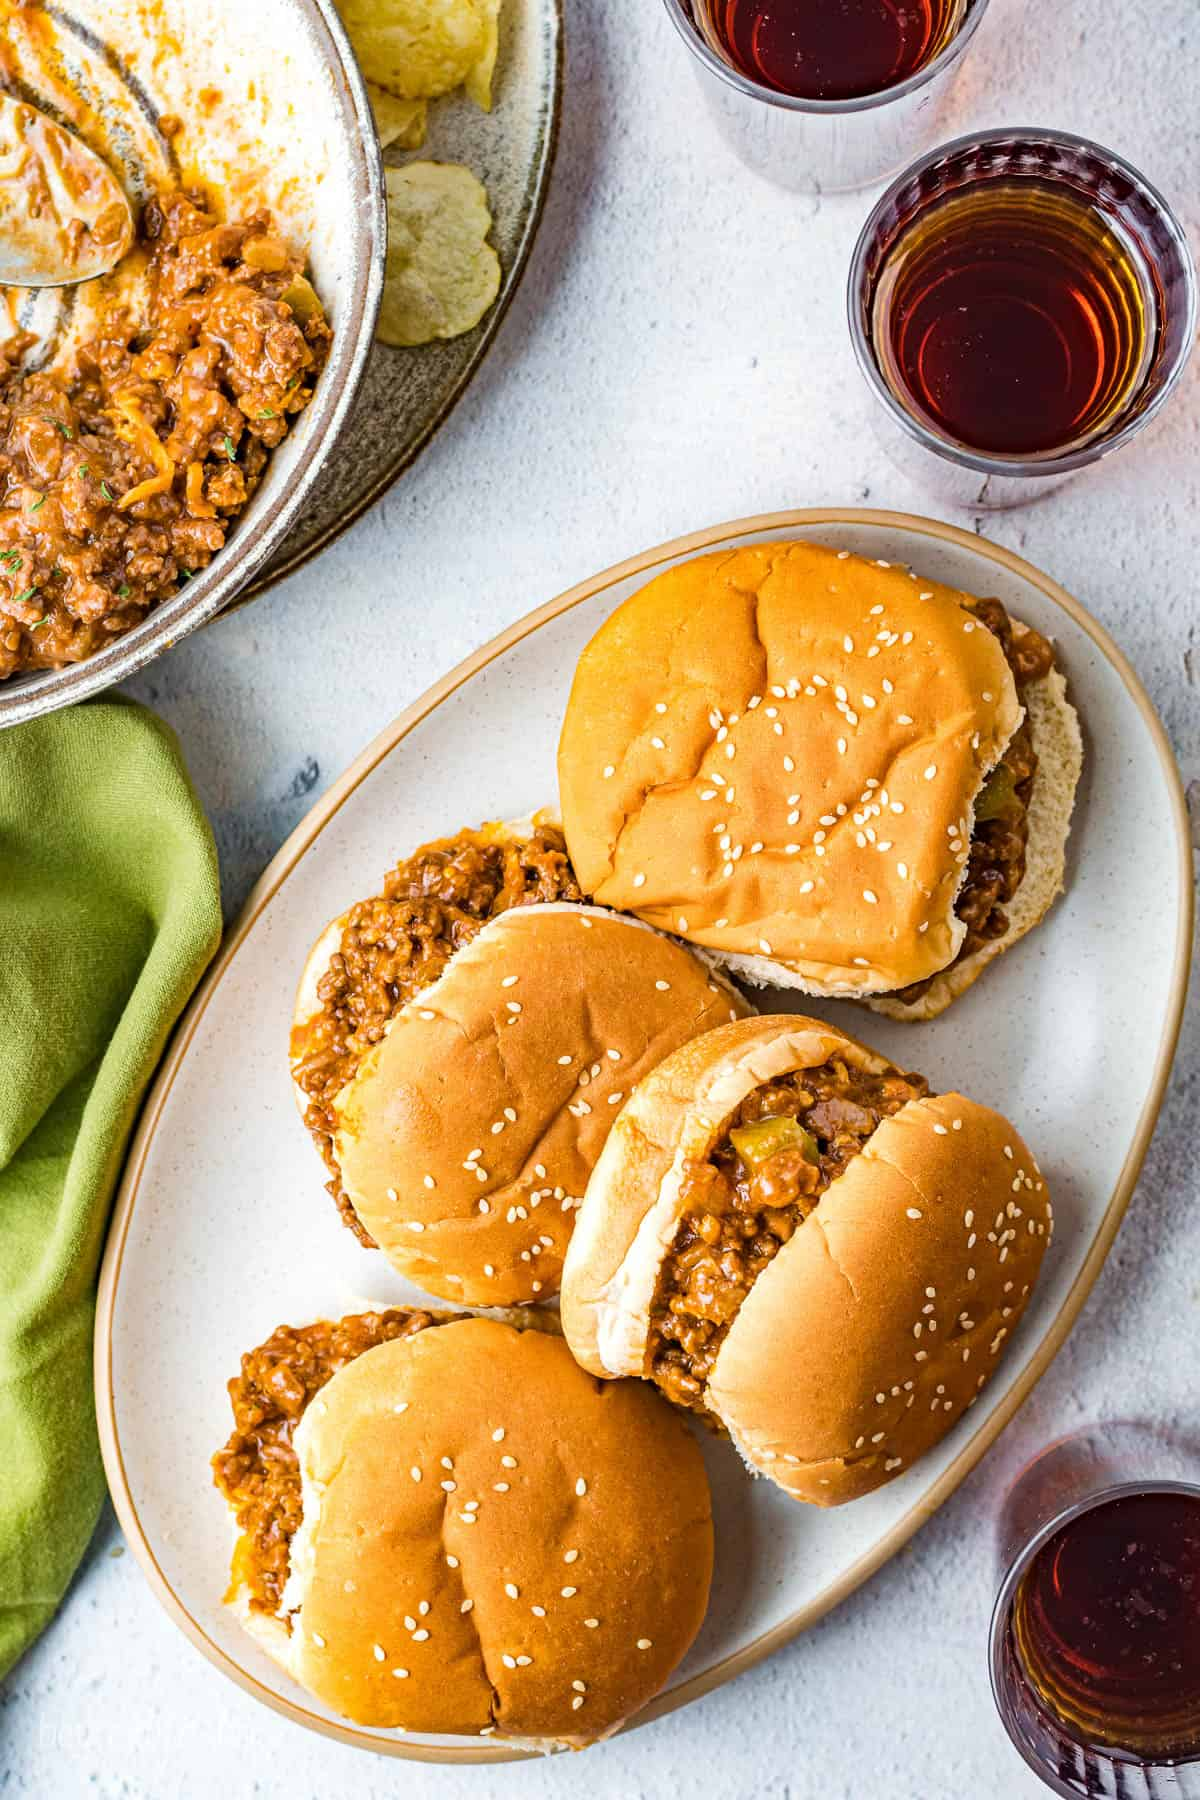 A platter of 4 finished Sloppy Joes.